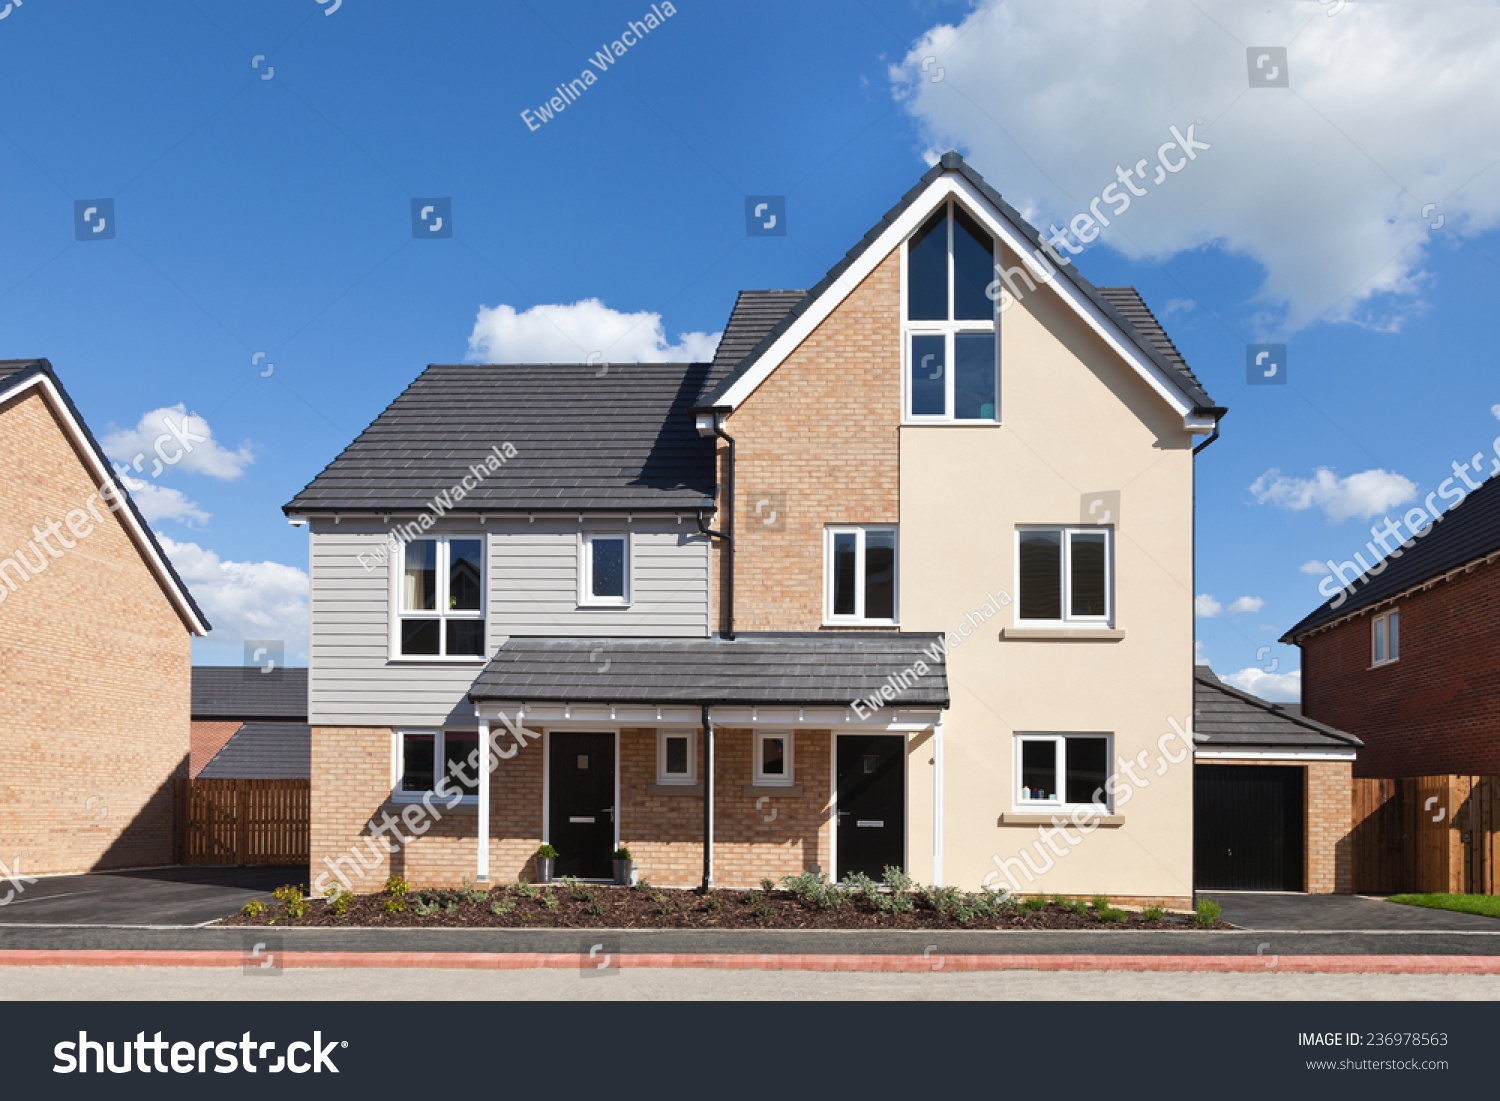 Modern English Semi Detached House With Garage Stock